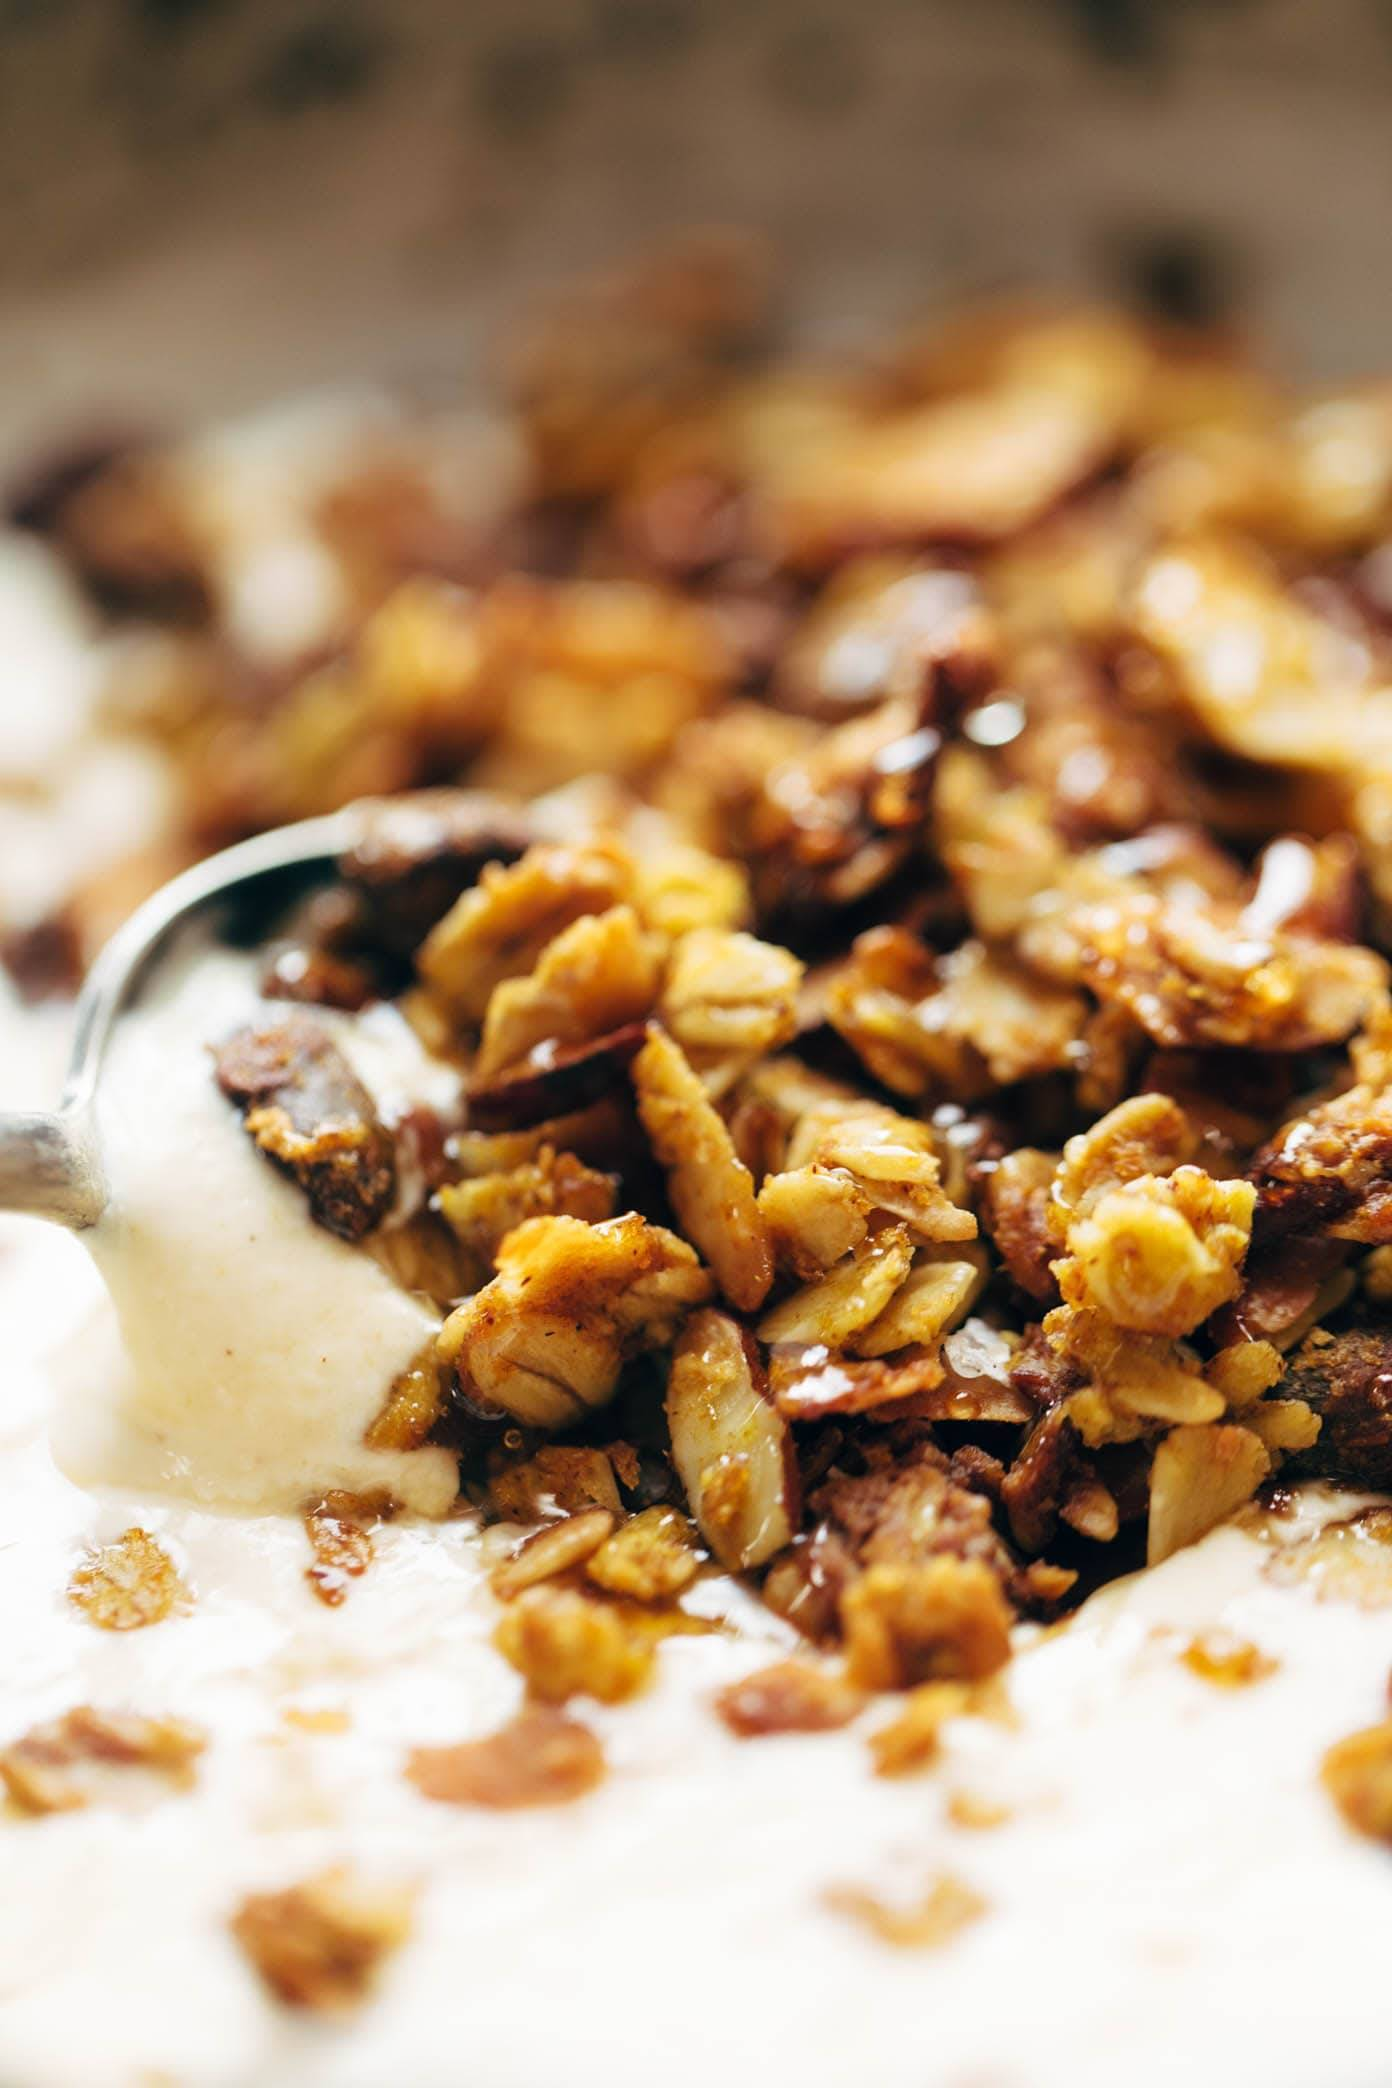 Pumpkin Granola that is both salty and sweet! Made with REAL PUMPKIN and oats, coconut, almonds, maple syrup, cinnamon, and olive oil. So good! ♡ gluten free, vegan, clean eating. | pinchofyum.com